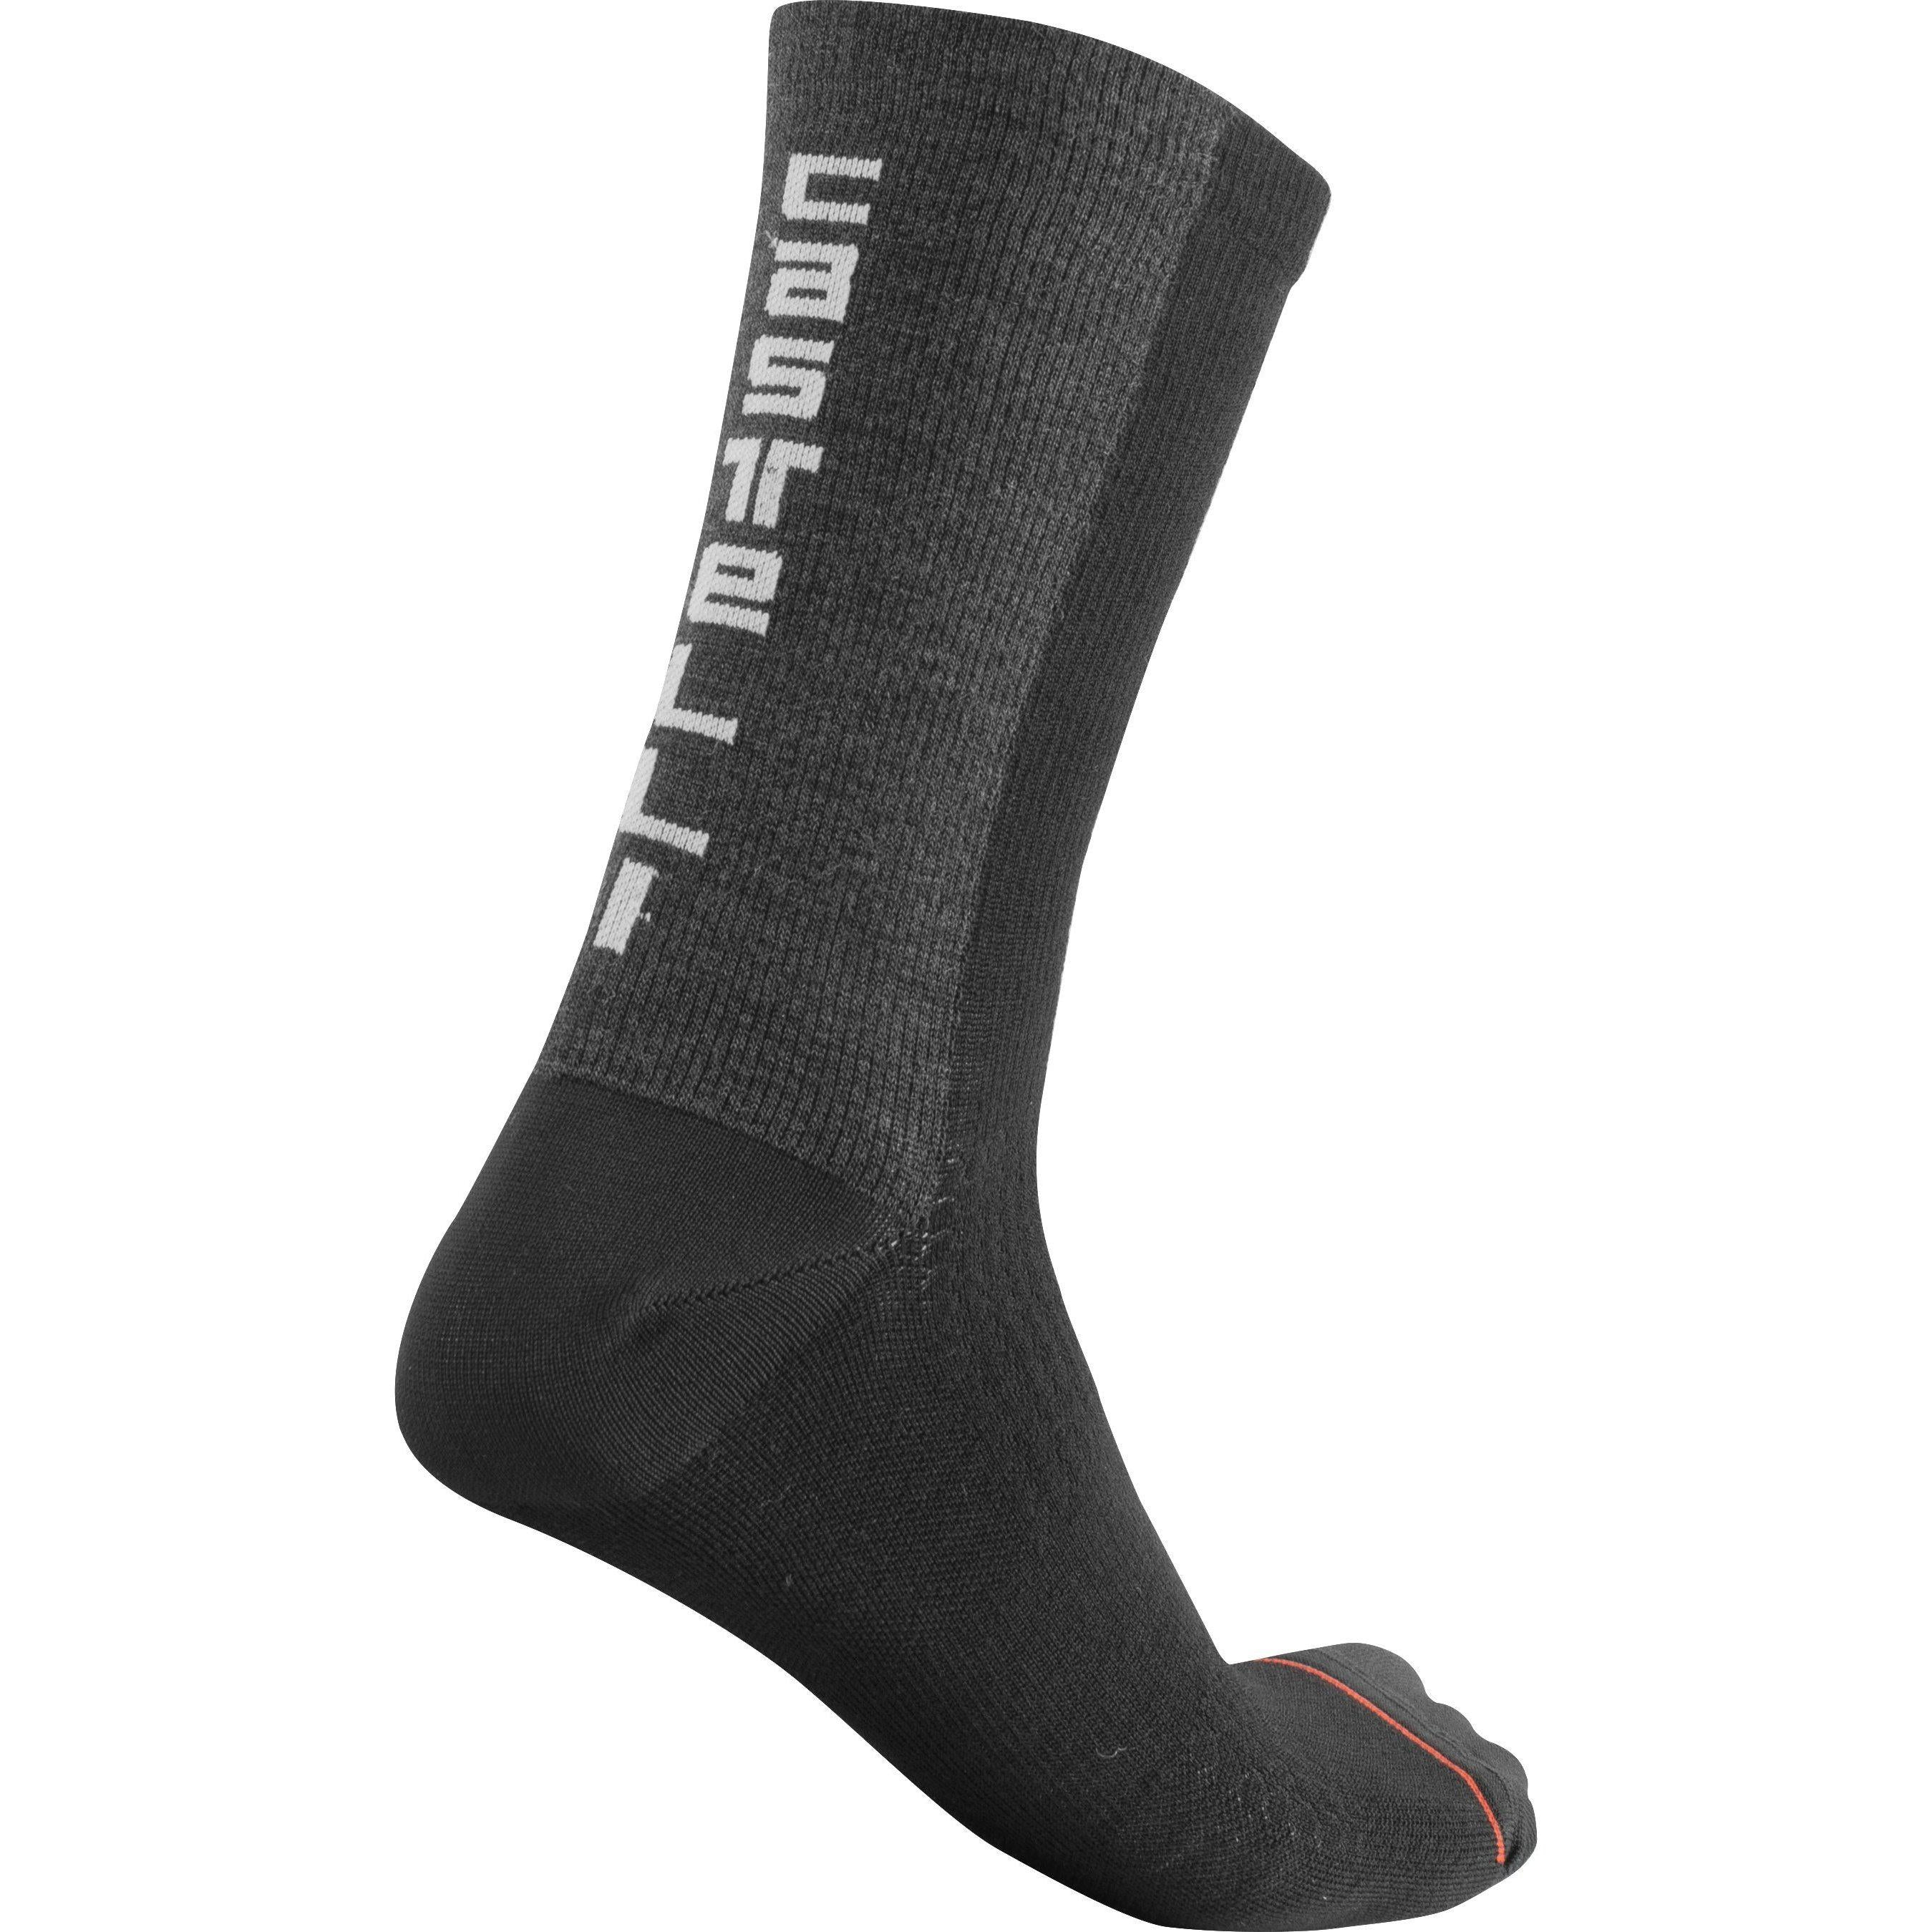 Castelli-Castelli Bandito Wool 18 Socks-Black-S/M-CS2054001009-saddleback-elite-performance-cycling